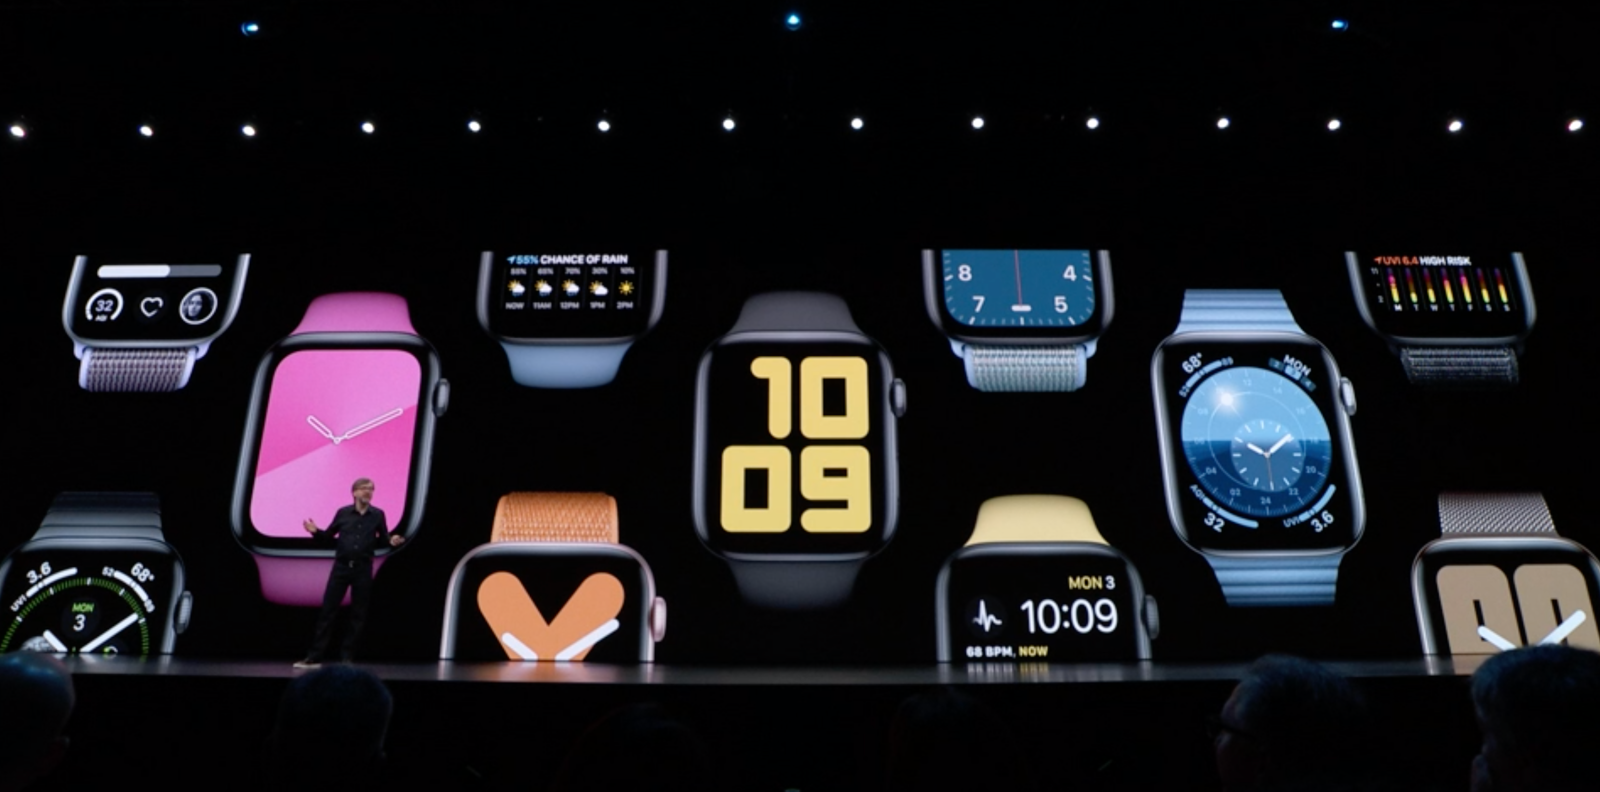 Apple officially announces watchOS 6 for Apple Watch